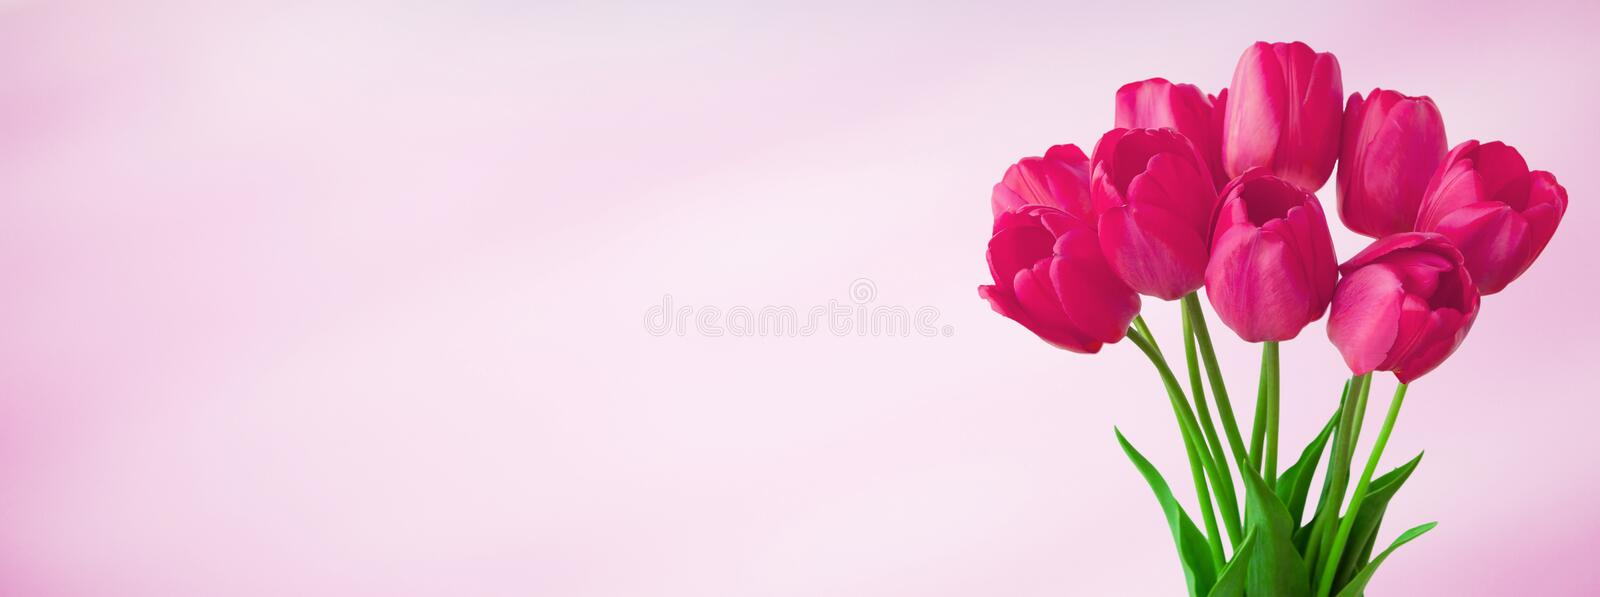 Panoramic light pink background with bouquet tulip flowers royalty free stock images